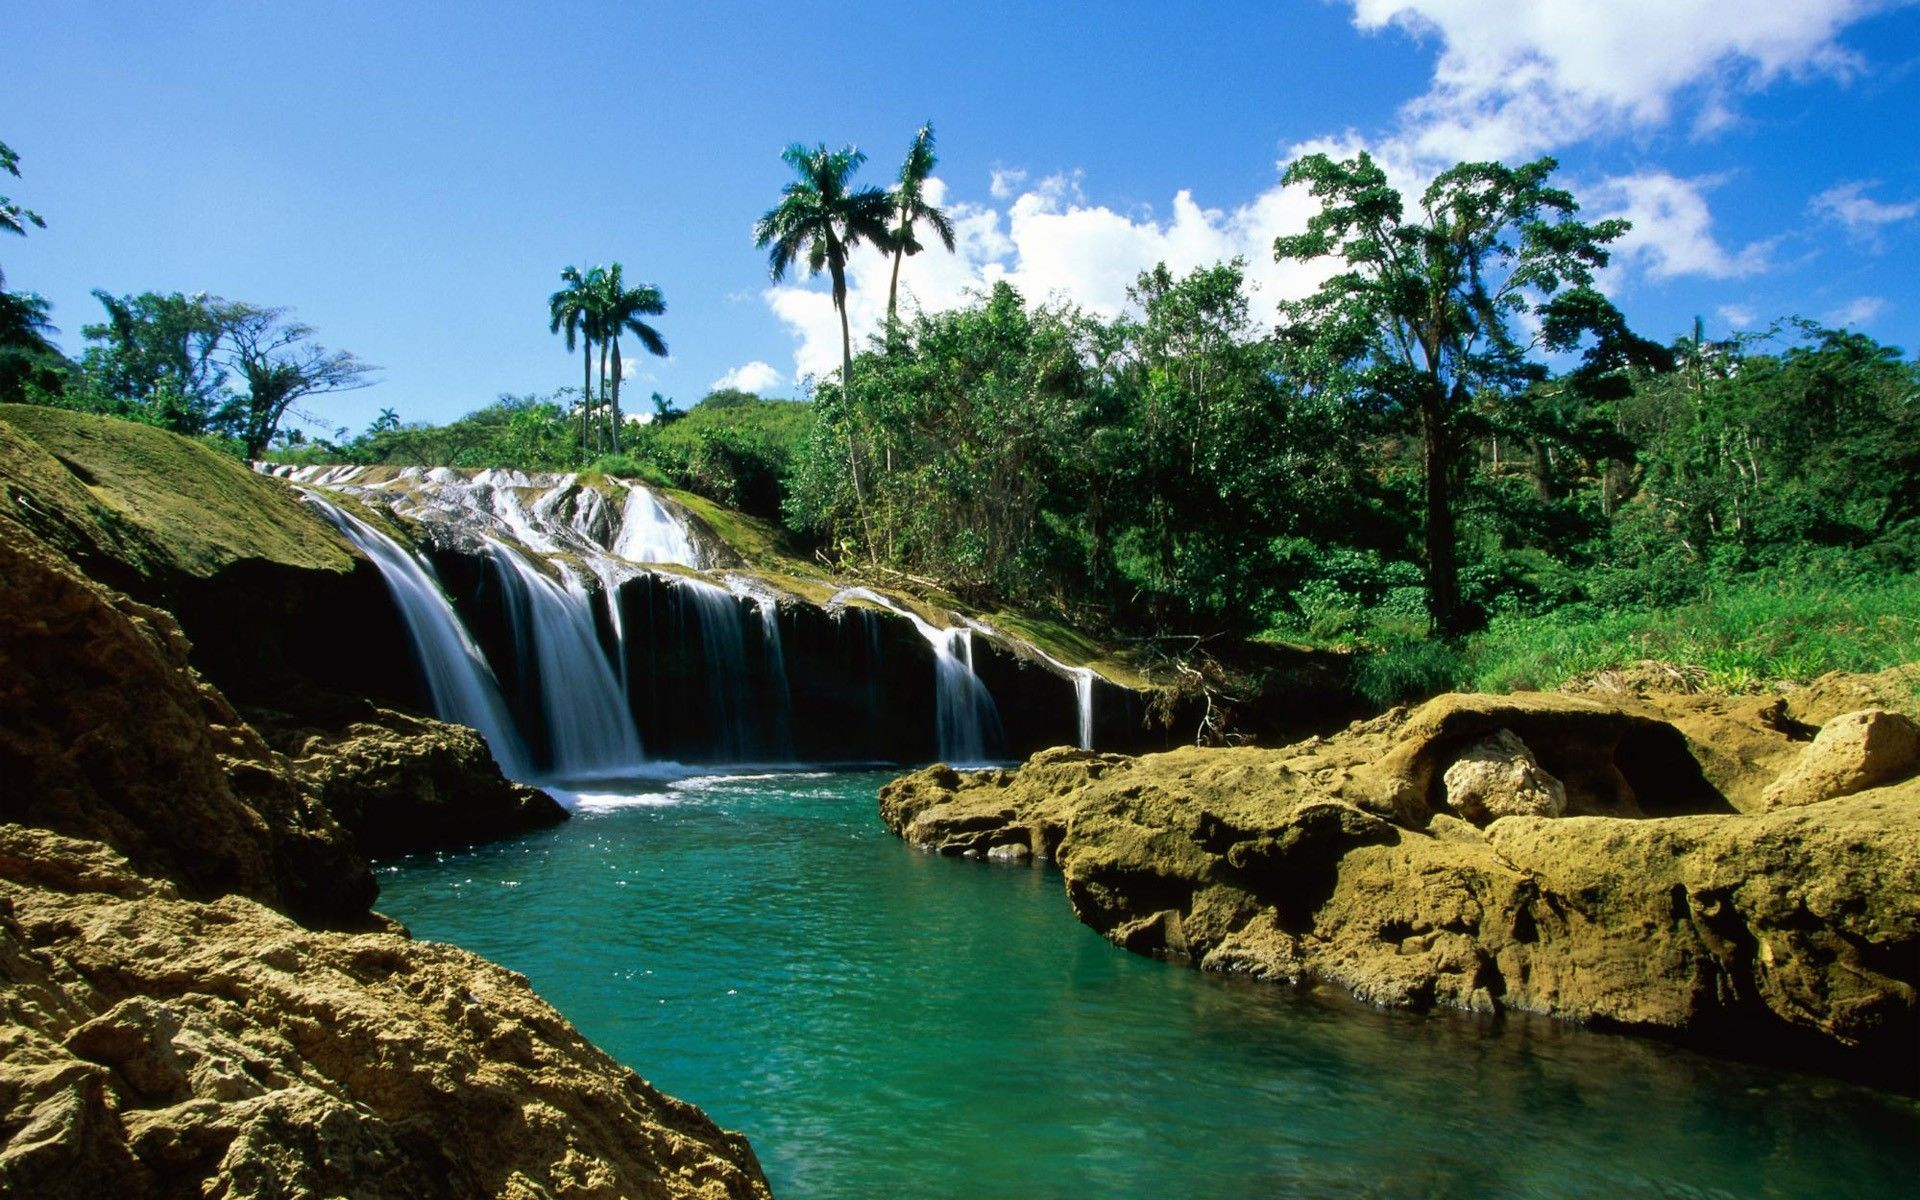 Waterfall Hd Wallpaper For Pc Full Hd Pictures Places To Visit Cuba Travel Beautiful Waterfalls